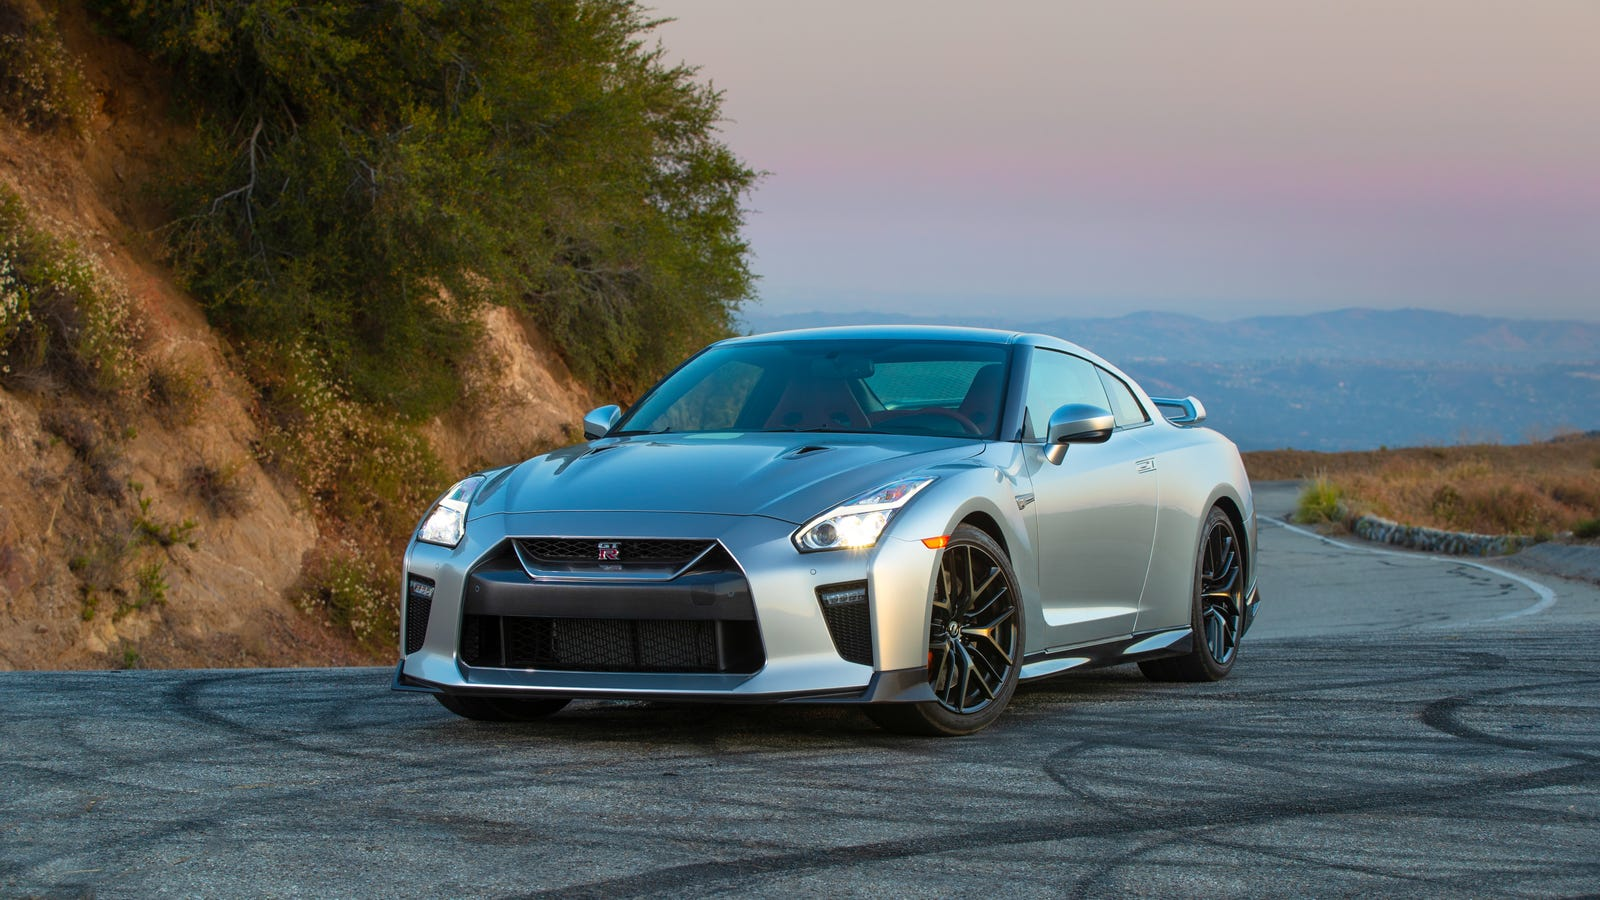 Nissan GT-R $50 More Expensive; Capitalism Wins, the People Lose; Car No Longer Worth It